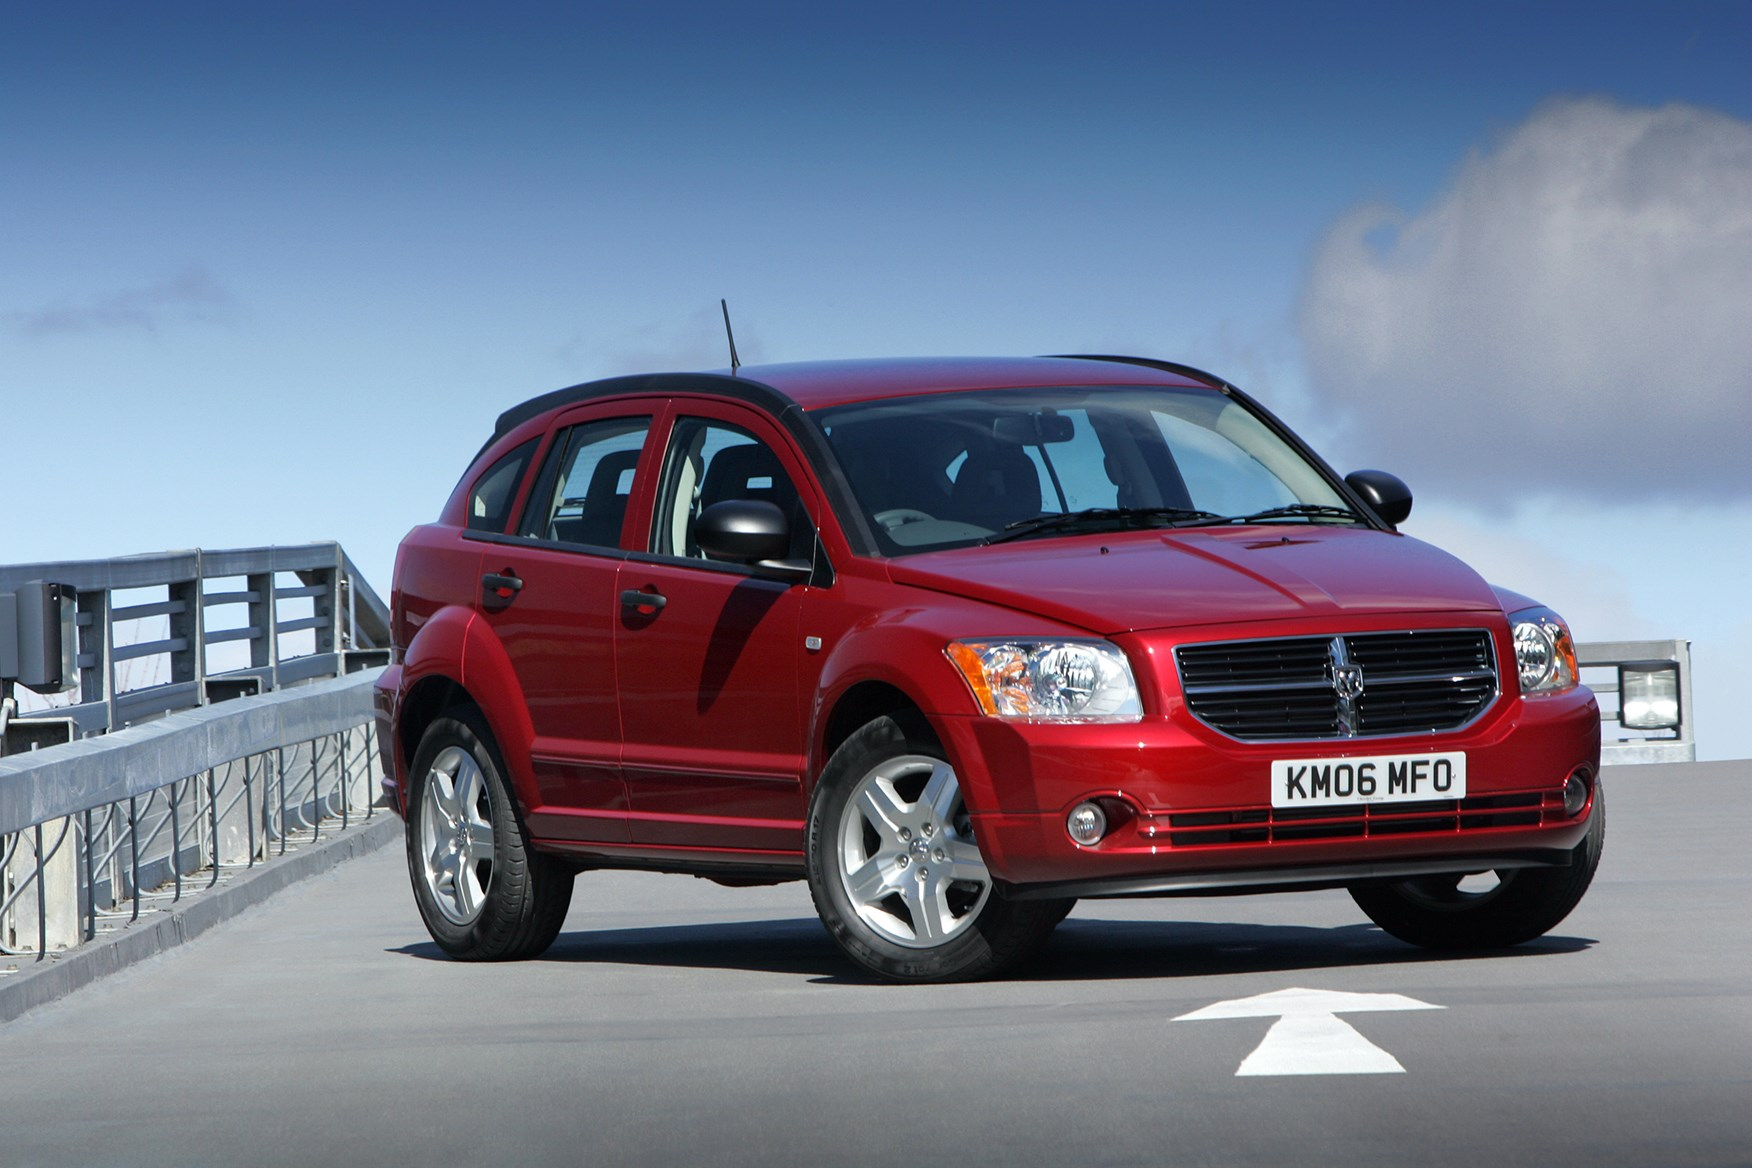 Caliber Car: Dodge Caliber Hatchback Review (2006 - 2009)